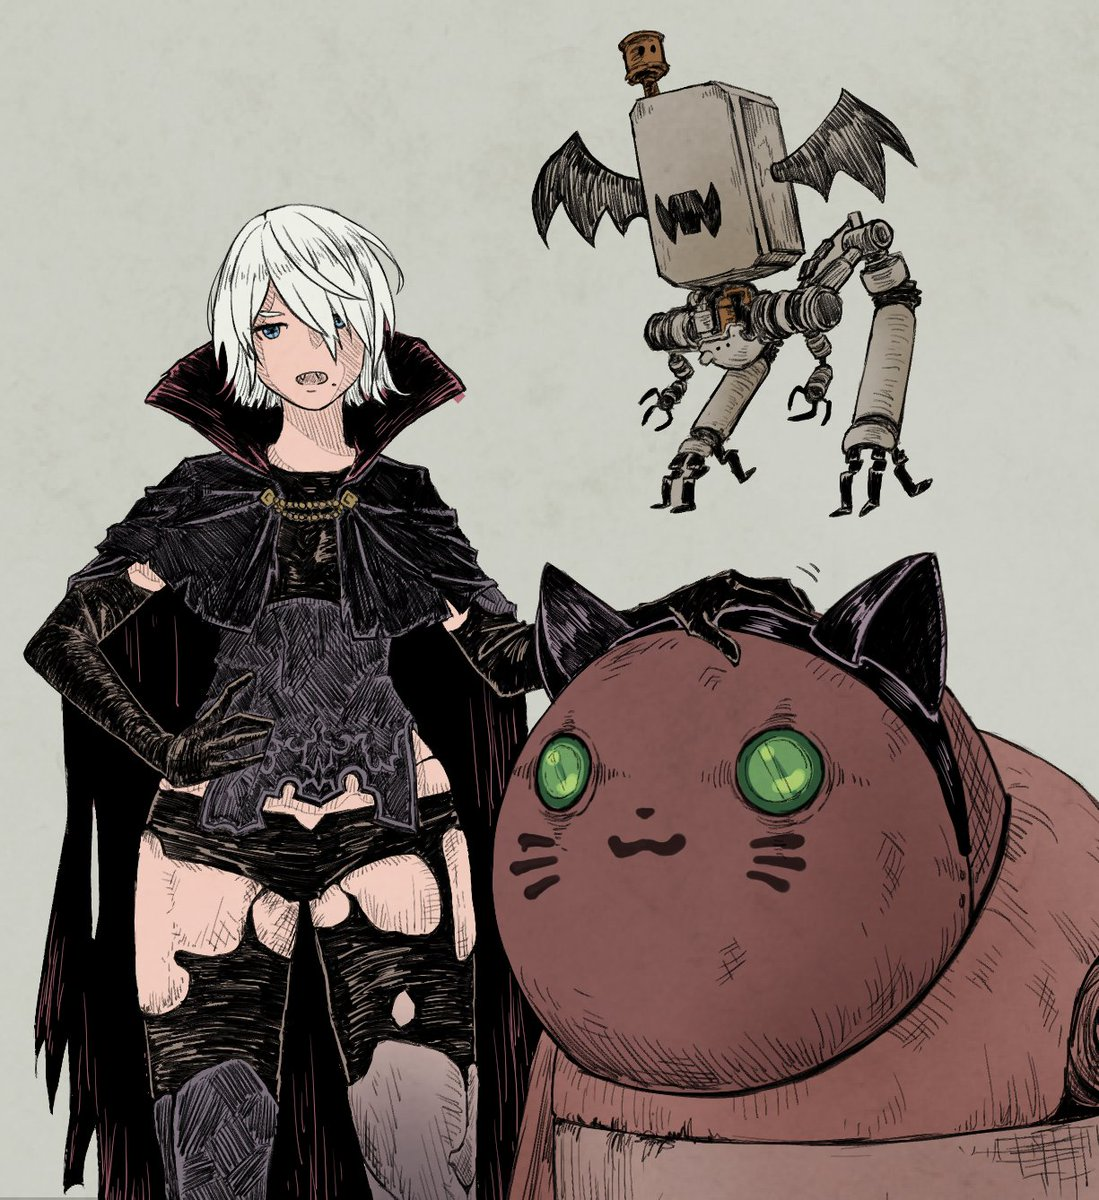 A In A Vampire Costume As She Pets A Cat Costumed Machine Child And Her